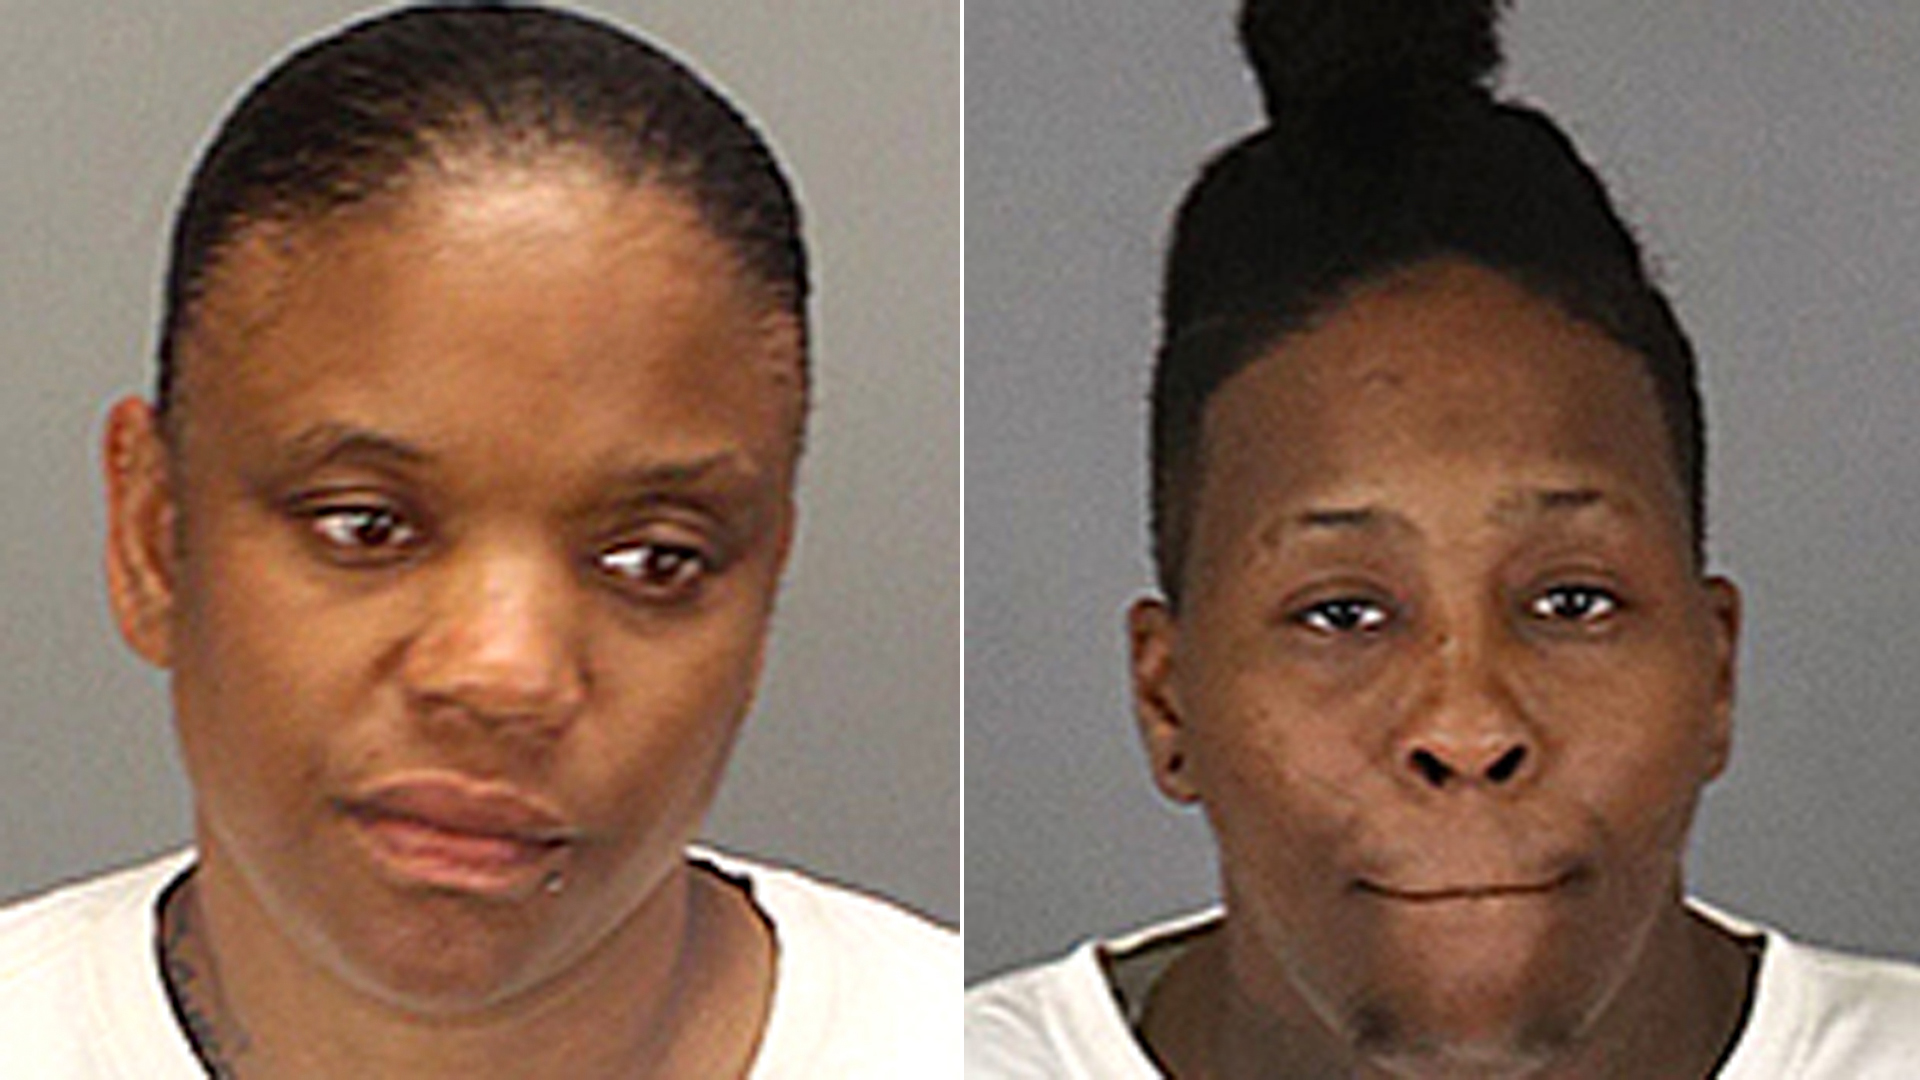 Candace Townsel, left, and Kimesha Williams, right, are seen in booking photos released by the Riverside County Sheriff's Department. Williams is the sister of Clippers star Kawhi Leonard.